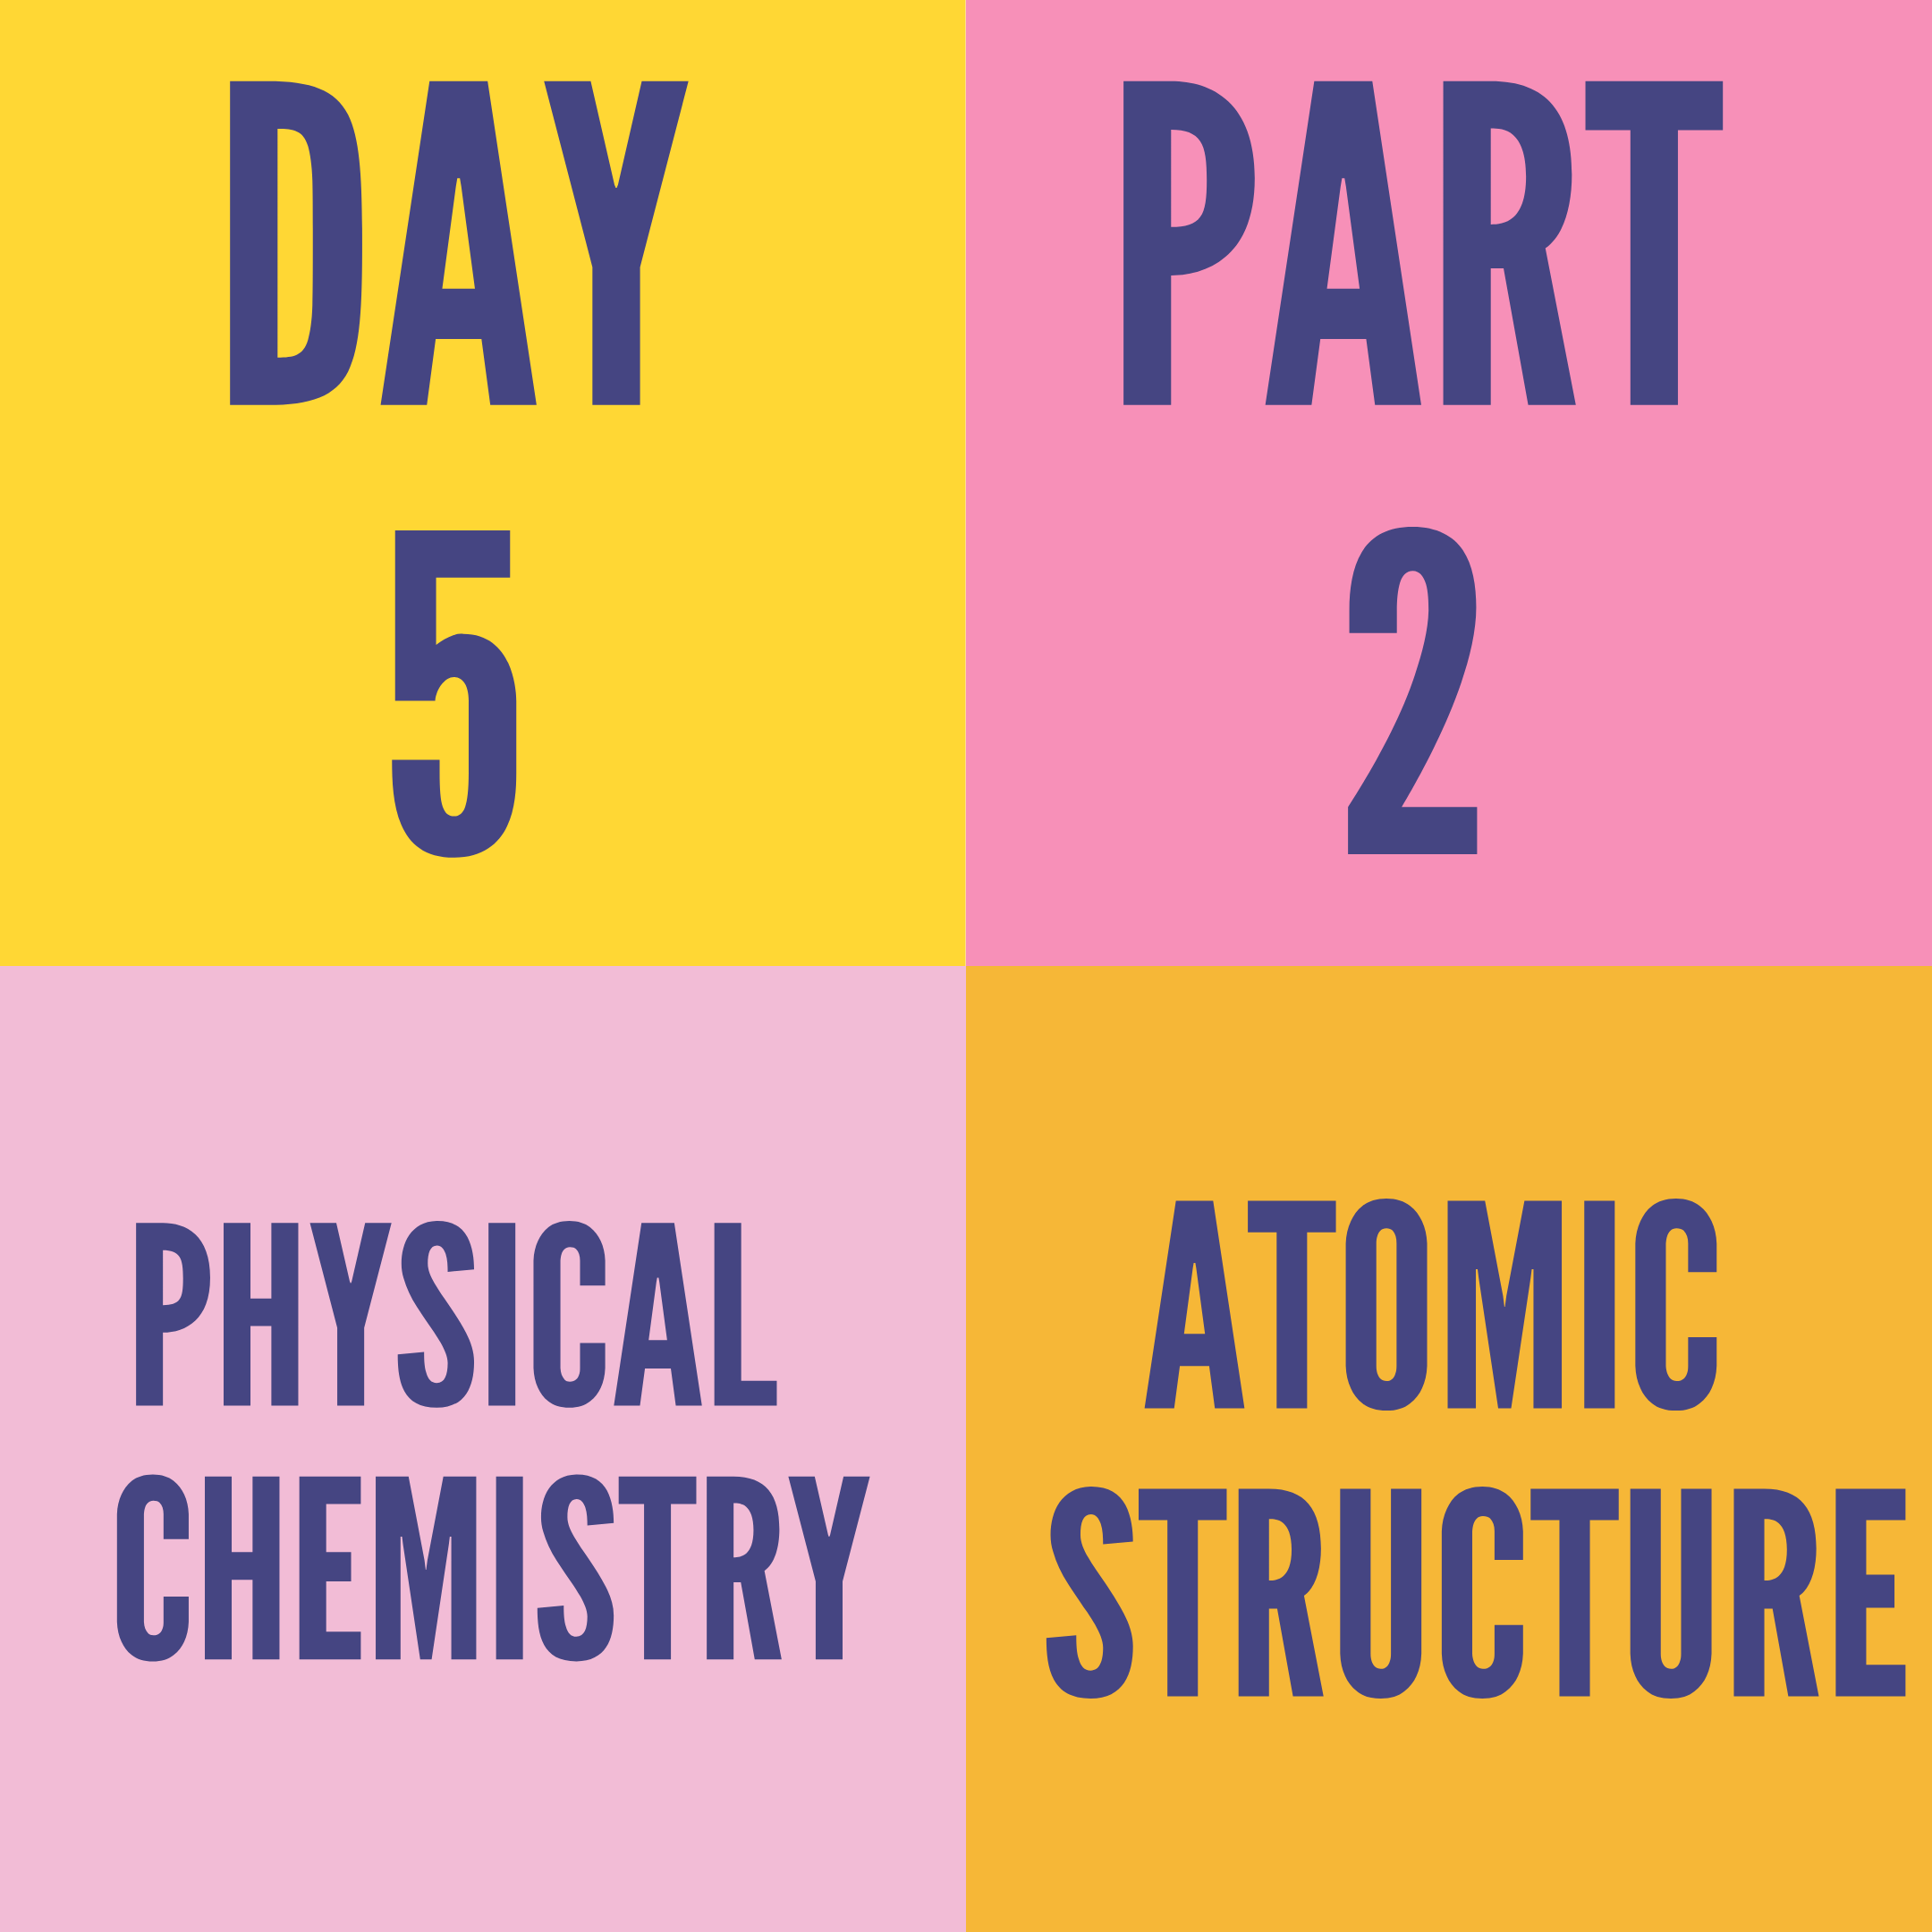 DAY-5 PART-2 ATOMIC STRUCTURE